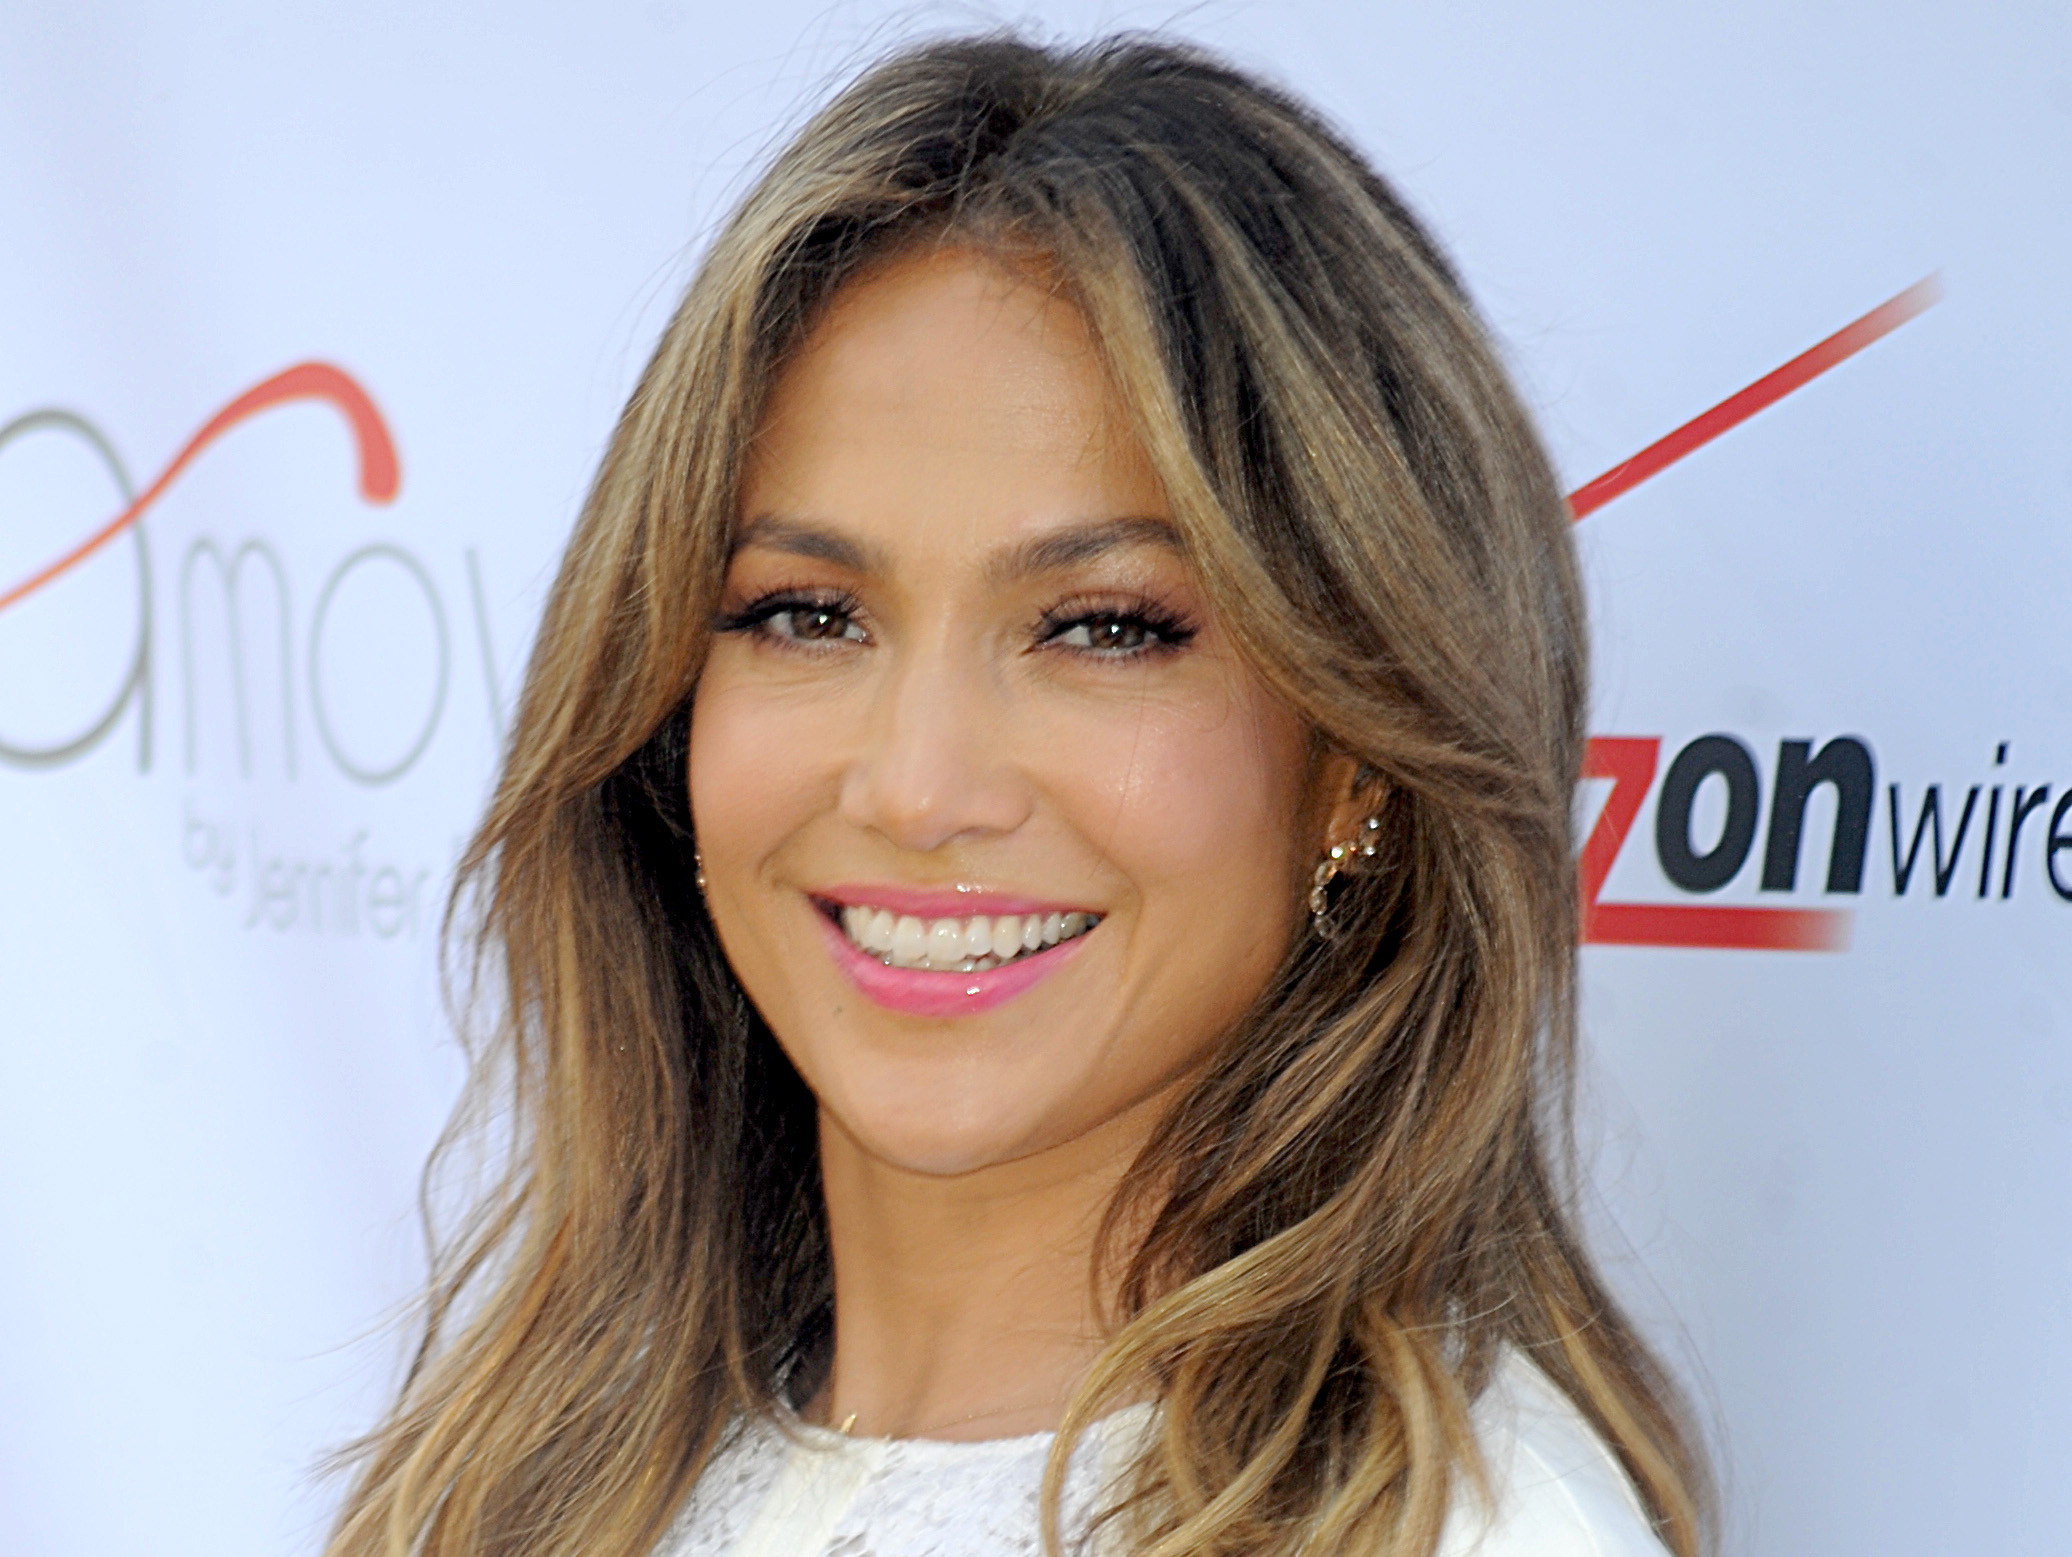 Jennifer Lopez: GET JLO'S NATURAL GLOW WITH THE 111 HARLEY ST MICRO PEN FACIAL